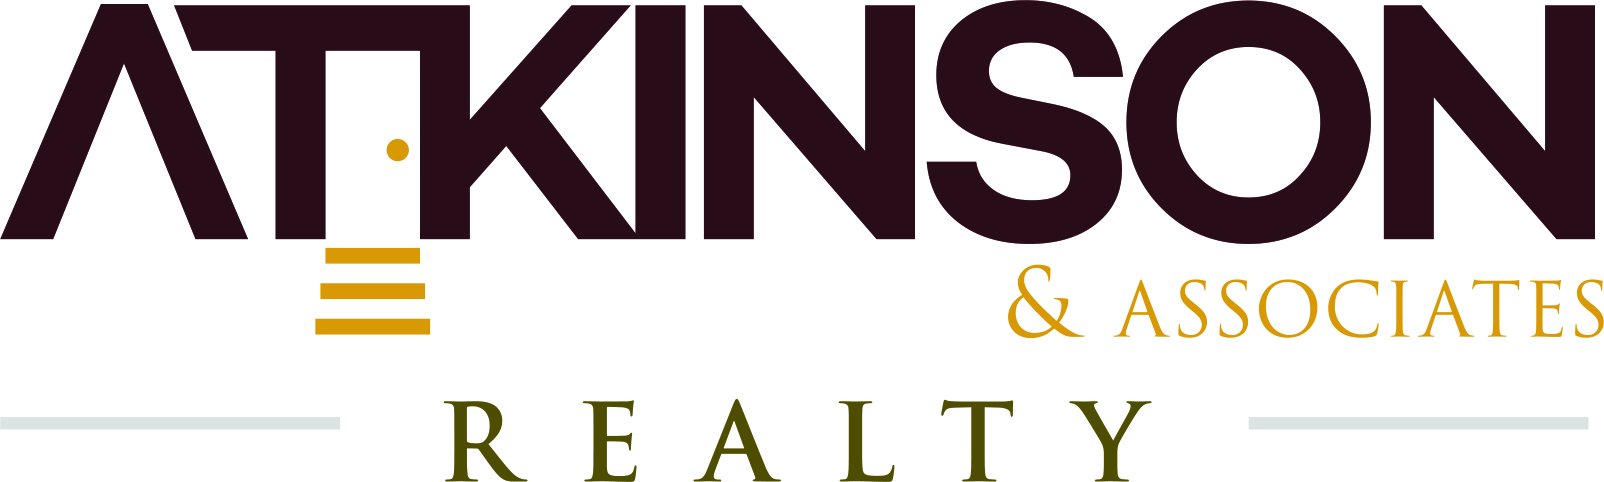 Atkinson & Associates Realty logo